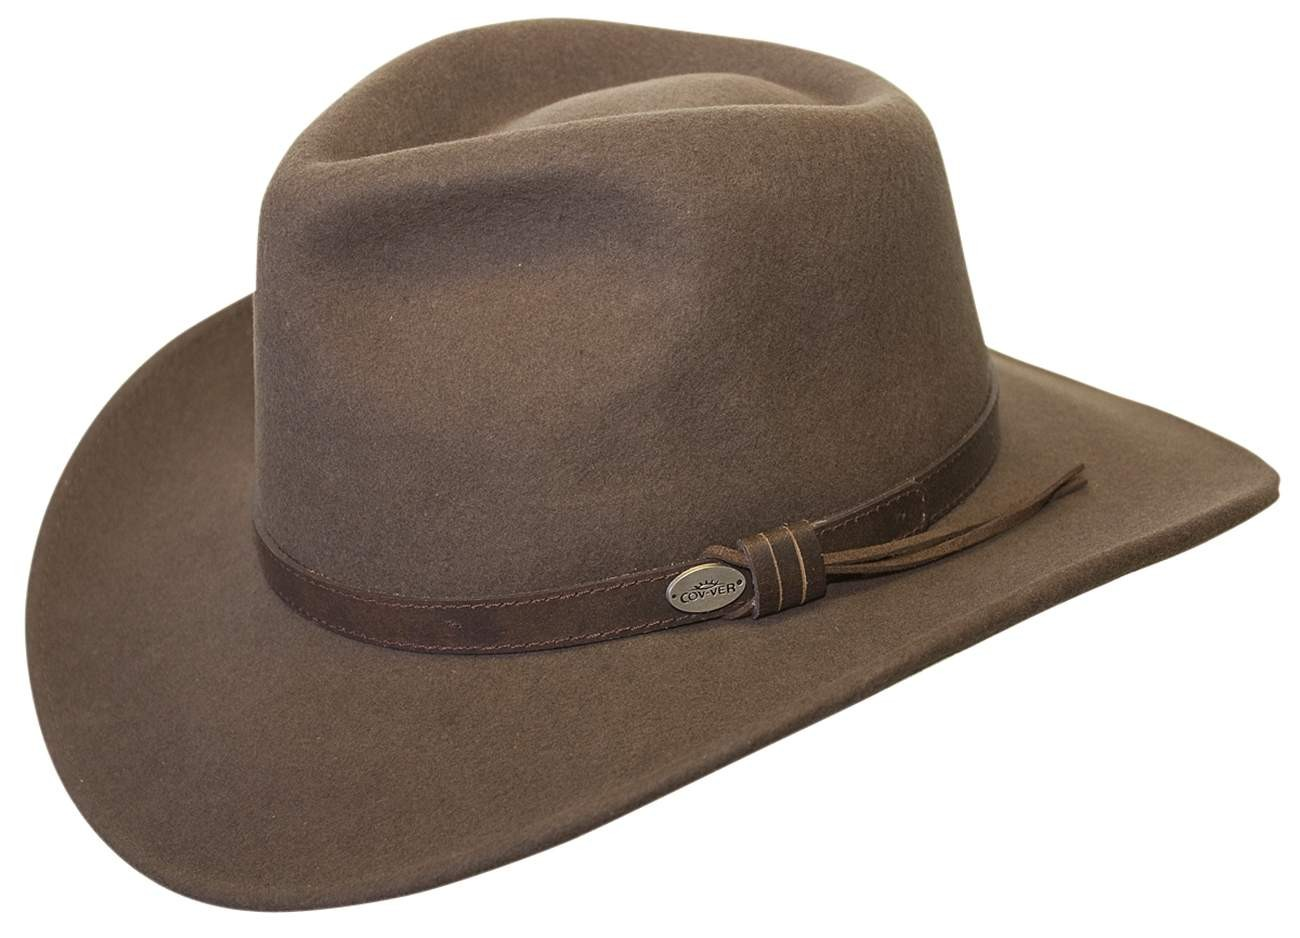 Pin How to Choose Men's Hat Images to Pinterest